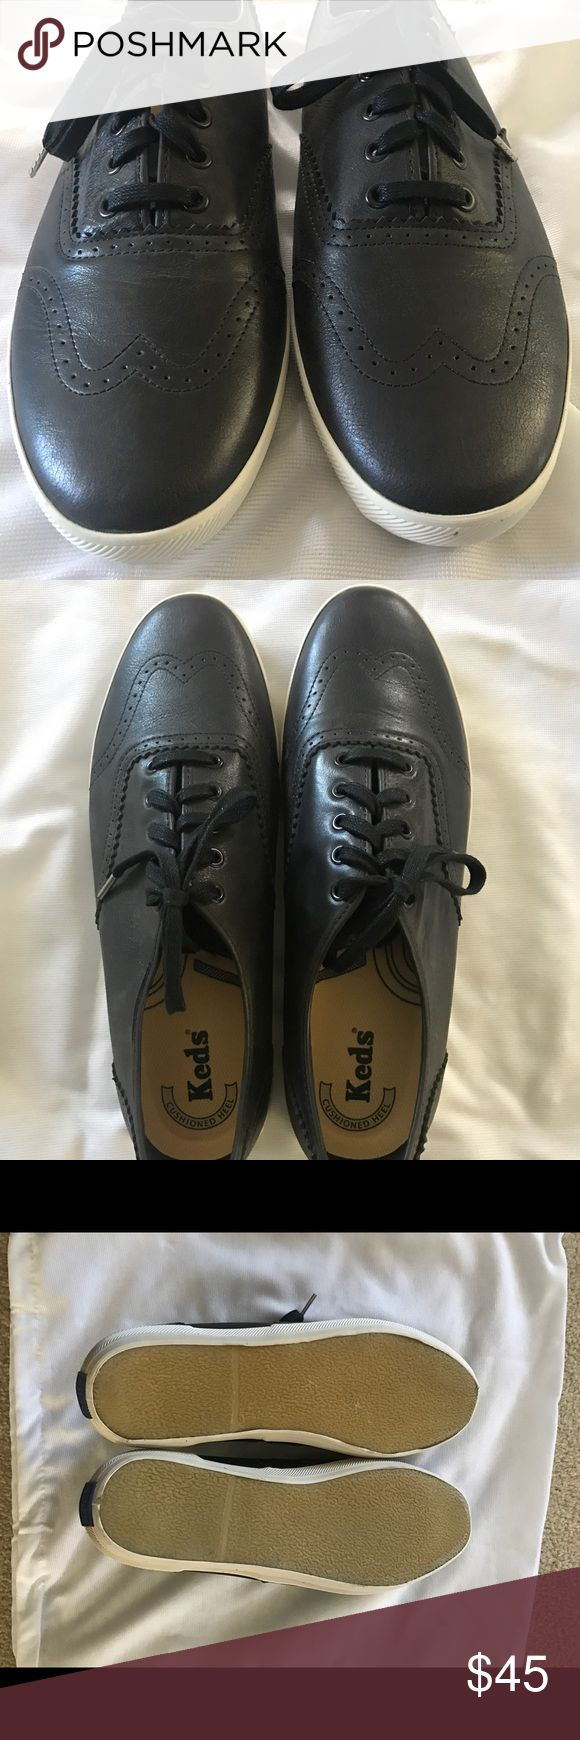 Ked's size 13 men's shoes Like new mens Ked's shoes size 13 Keds Shoes Sneakers